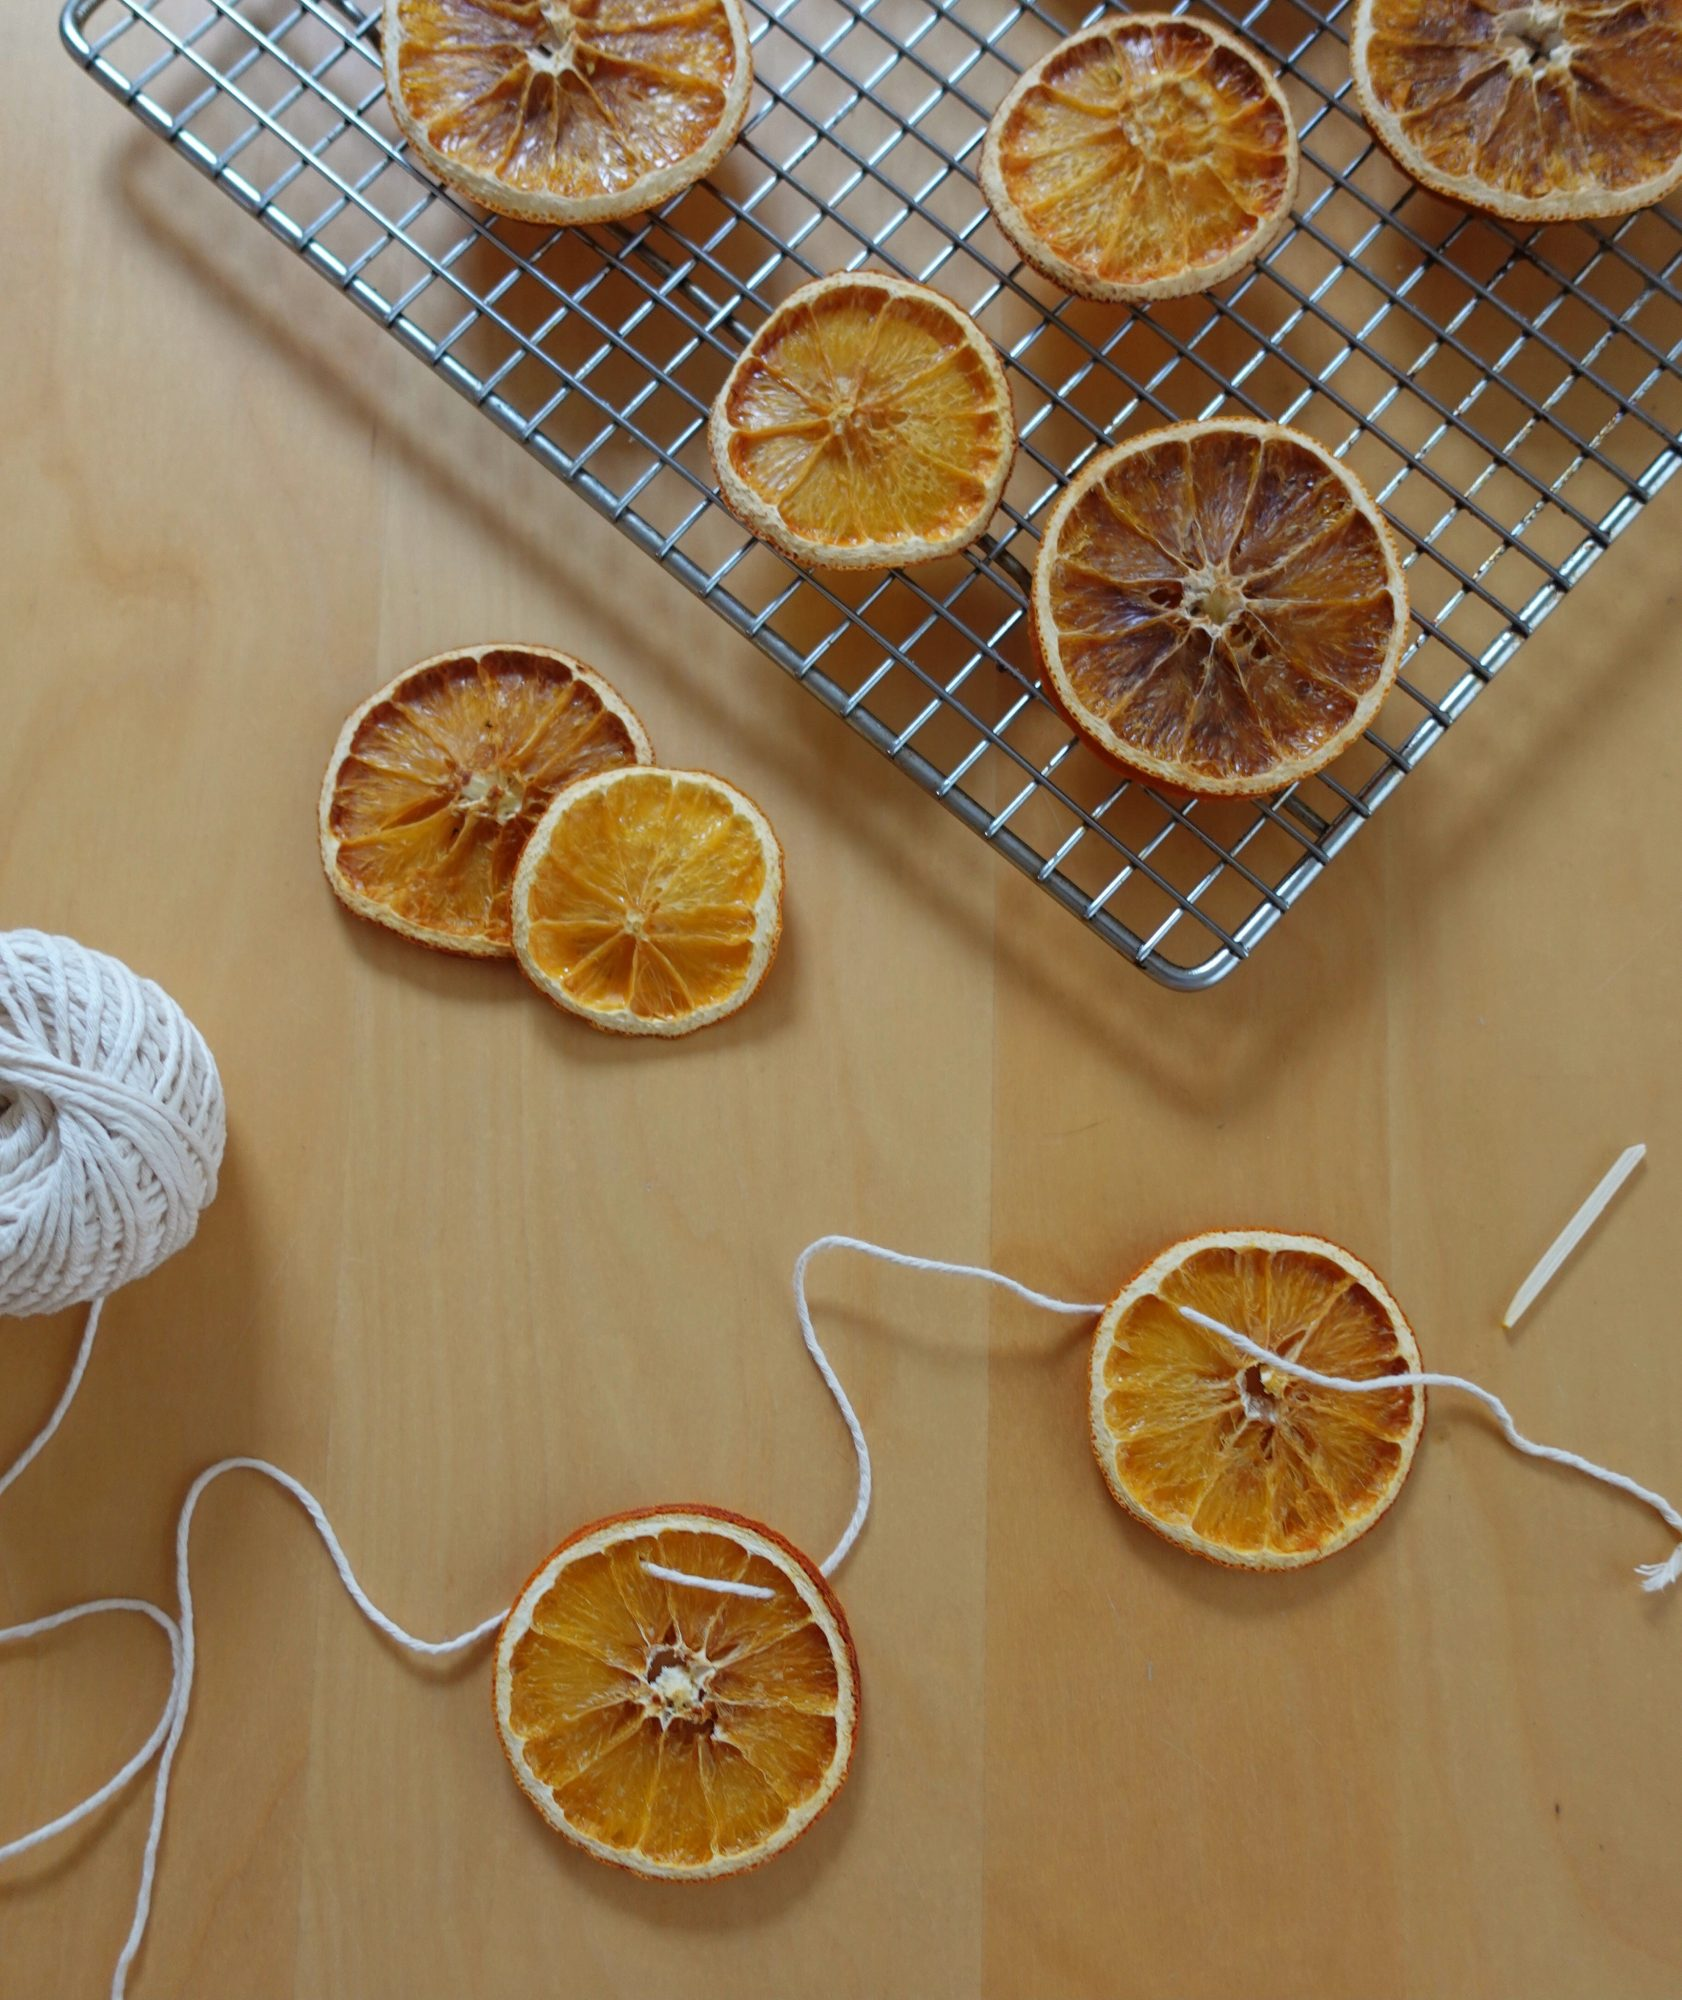 threading dried oranges on string to make a garland